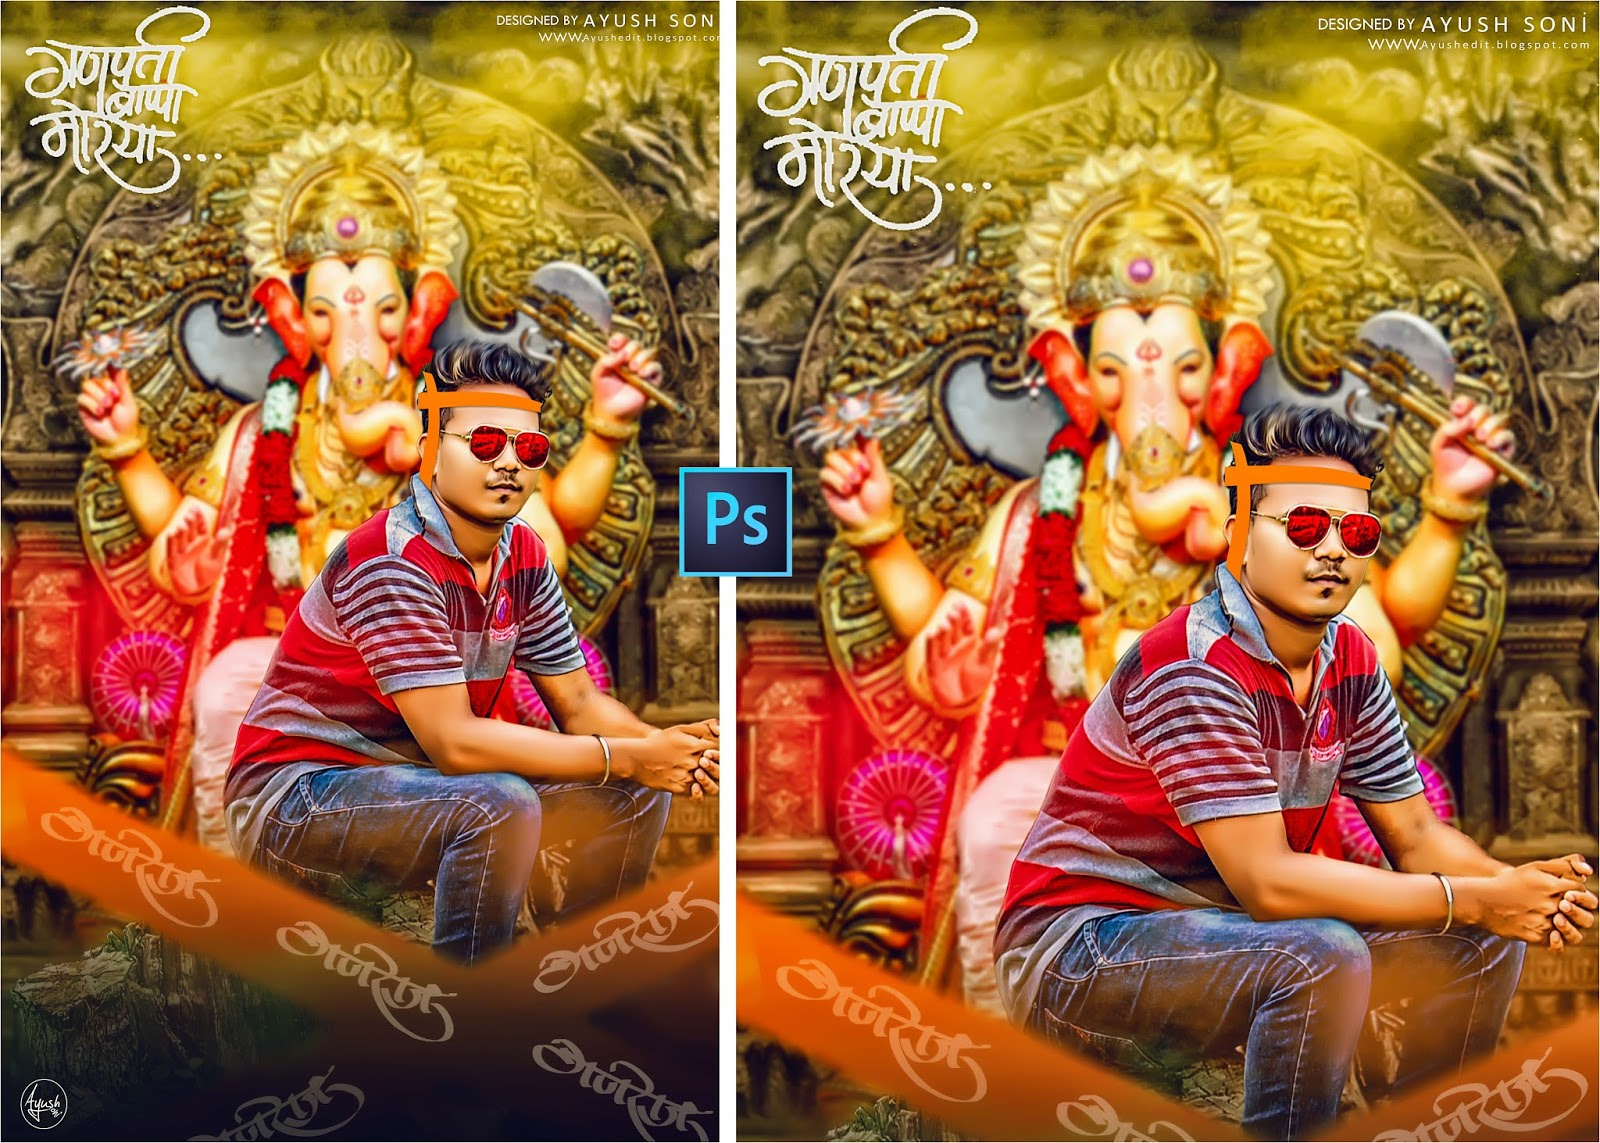 Ganesh chatudarshi special photo editing 2017 photoshop tutorial ganesh chatudarshi special photo editing 2017 photoshop tutorial baditri Gallery